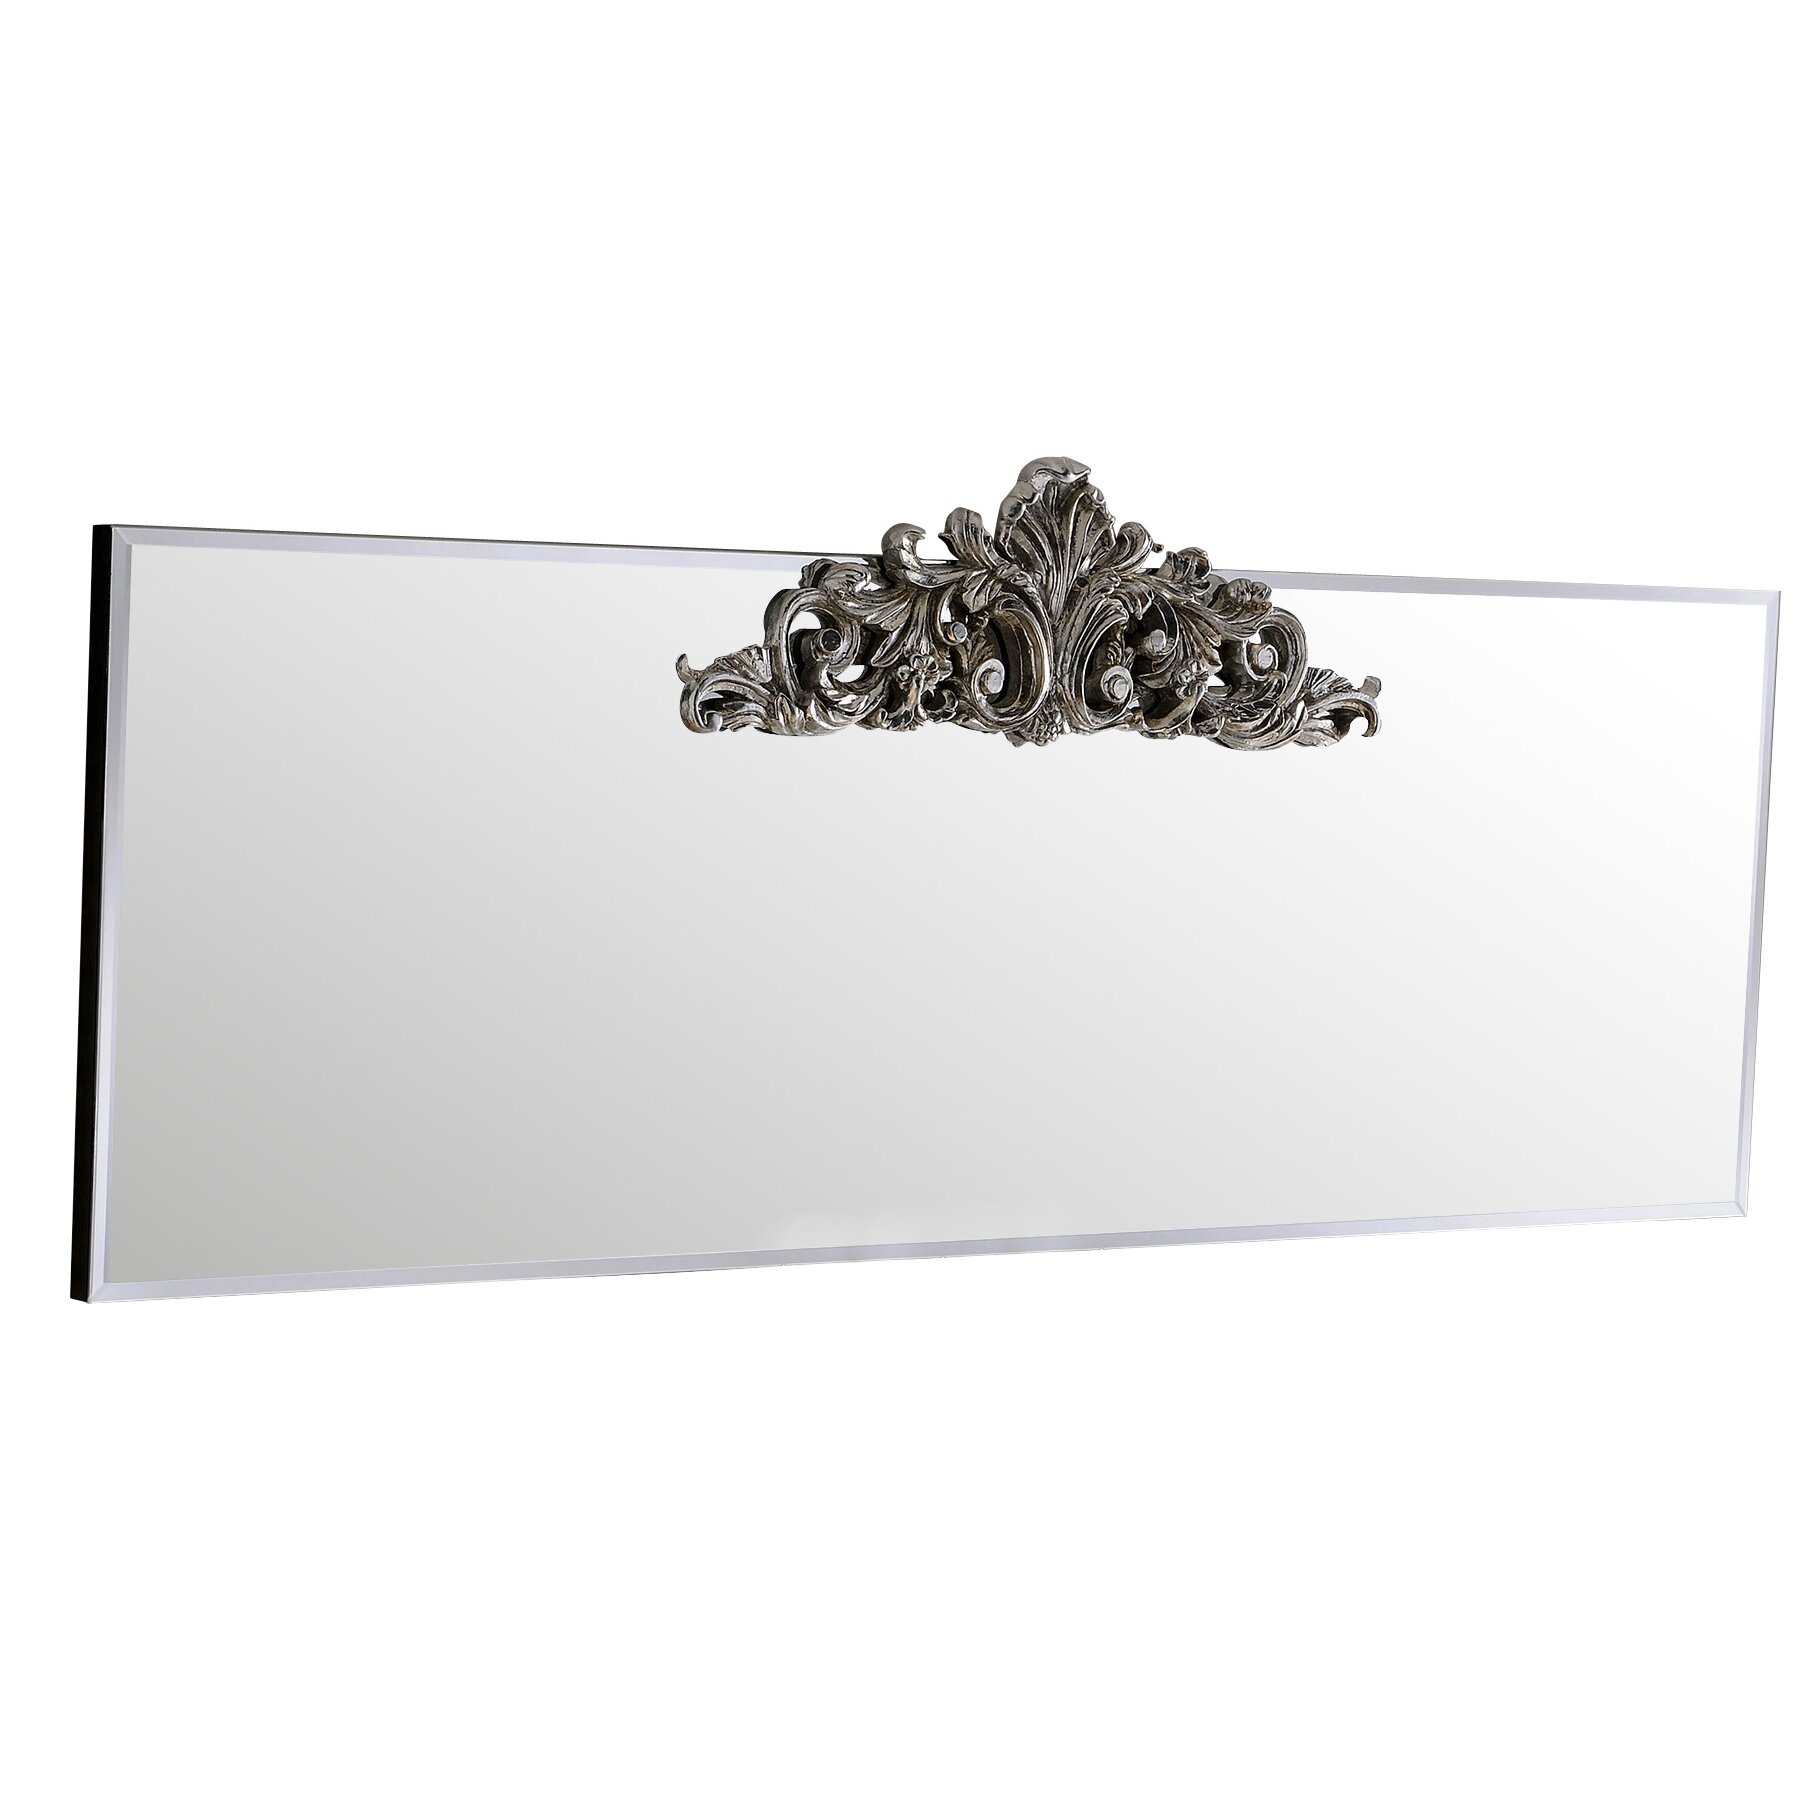 Yearn mirrors accent mirror reviews wayfair uk for Accent mirrors